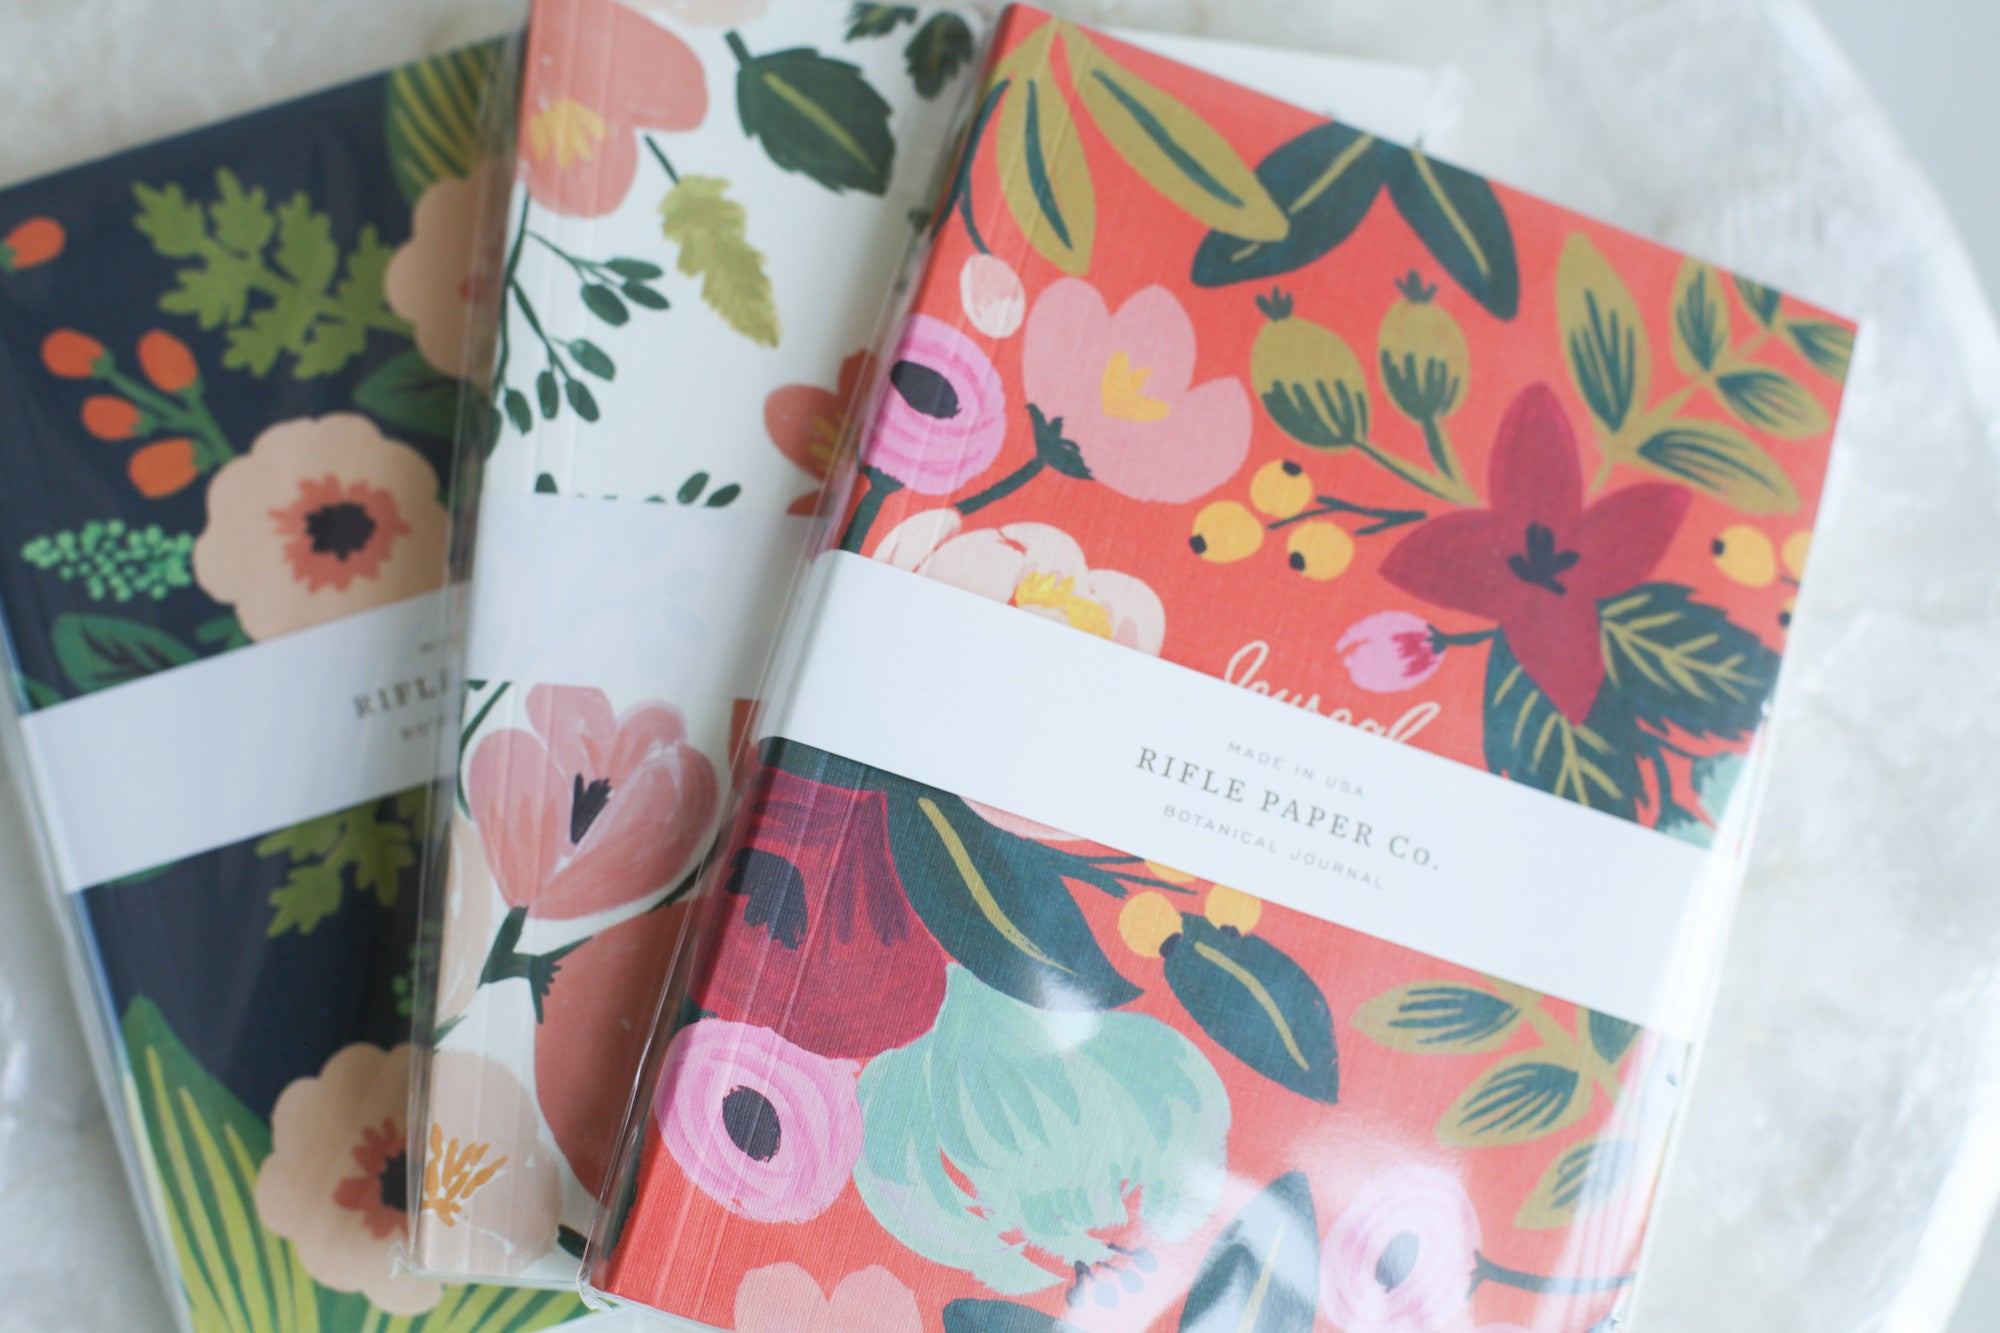 Rifle Paper Co. Jardin Everyday Journal - VelvetCrate